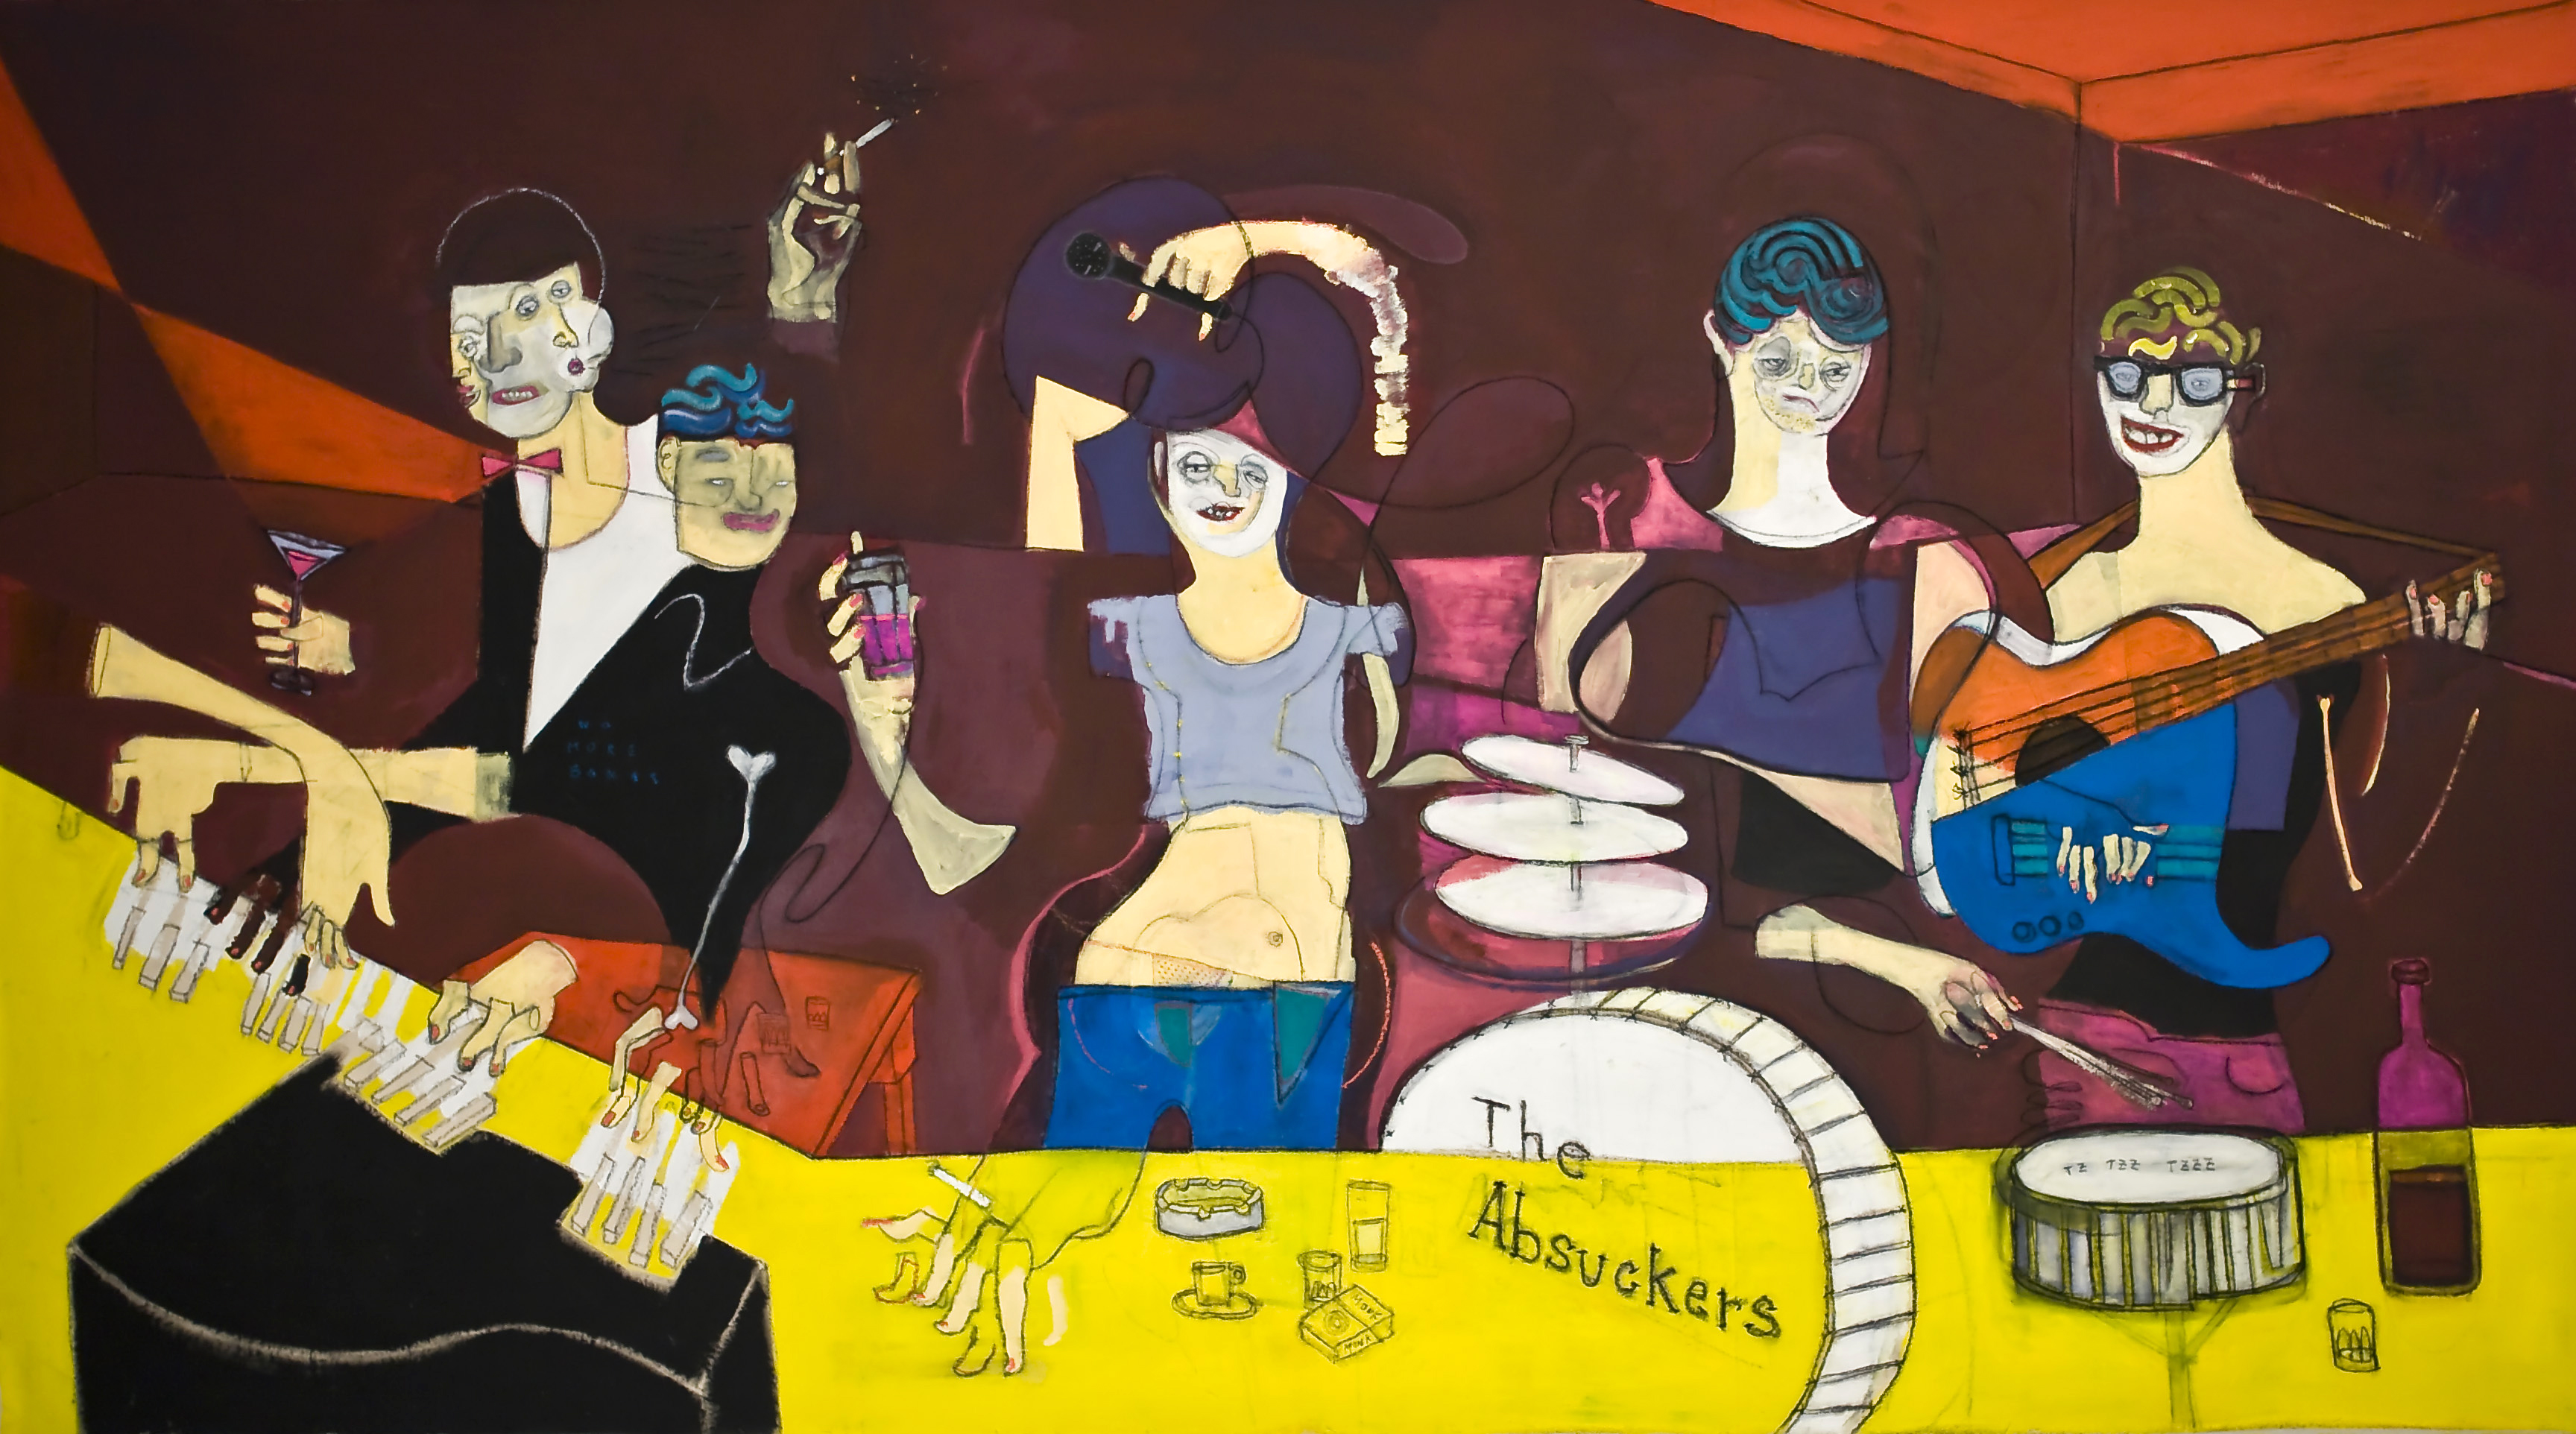 THE ABSUCKERS-285x160Cm-122.2x63In-AC-BERLIN-2013